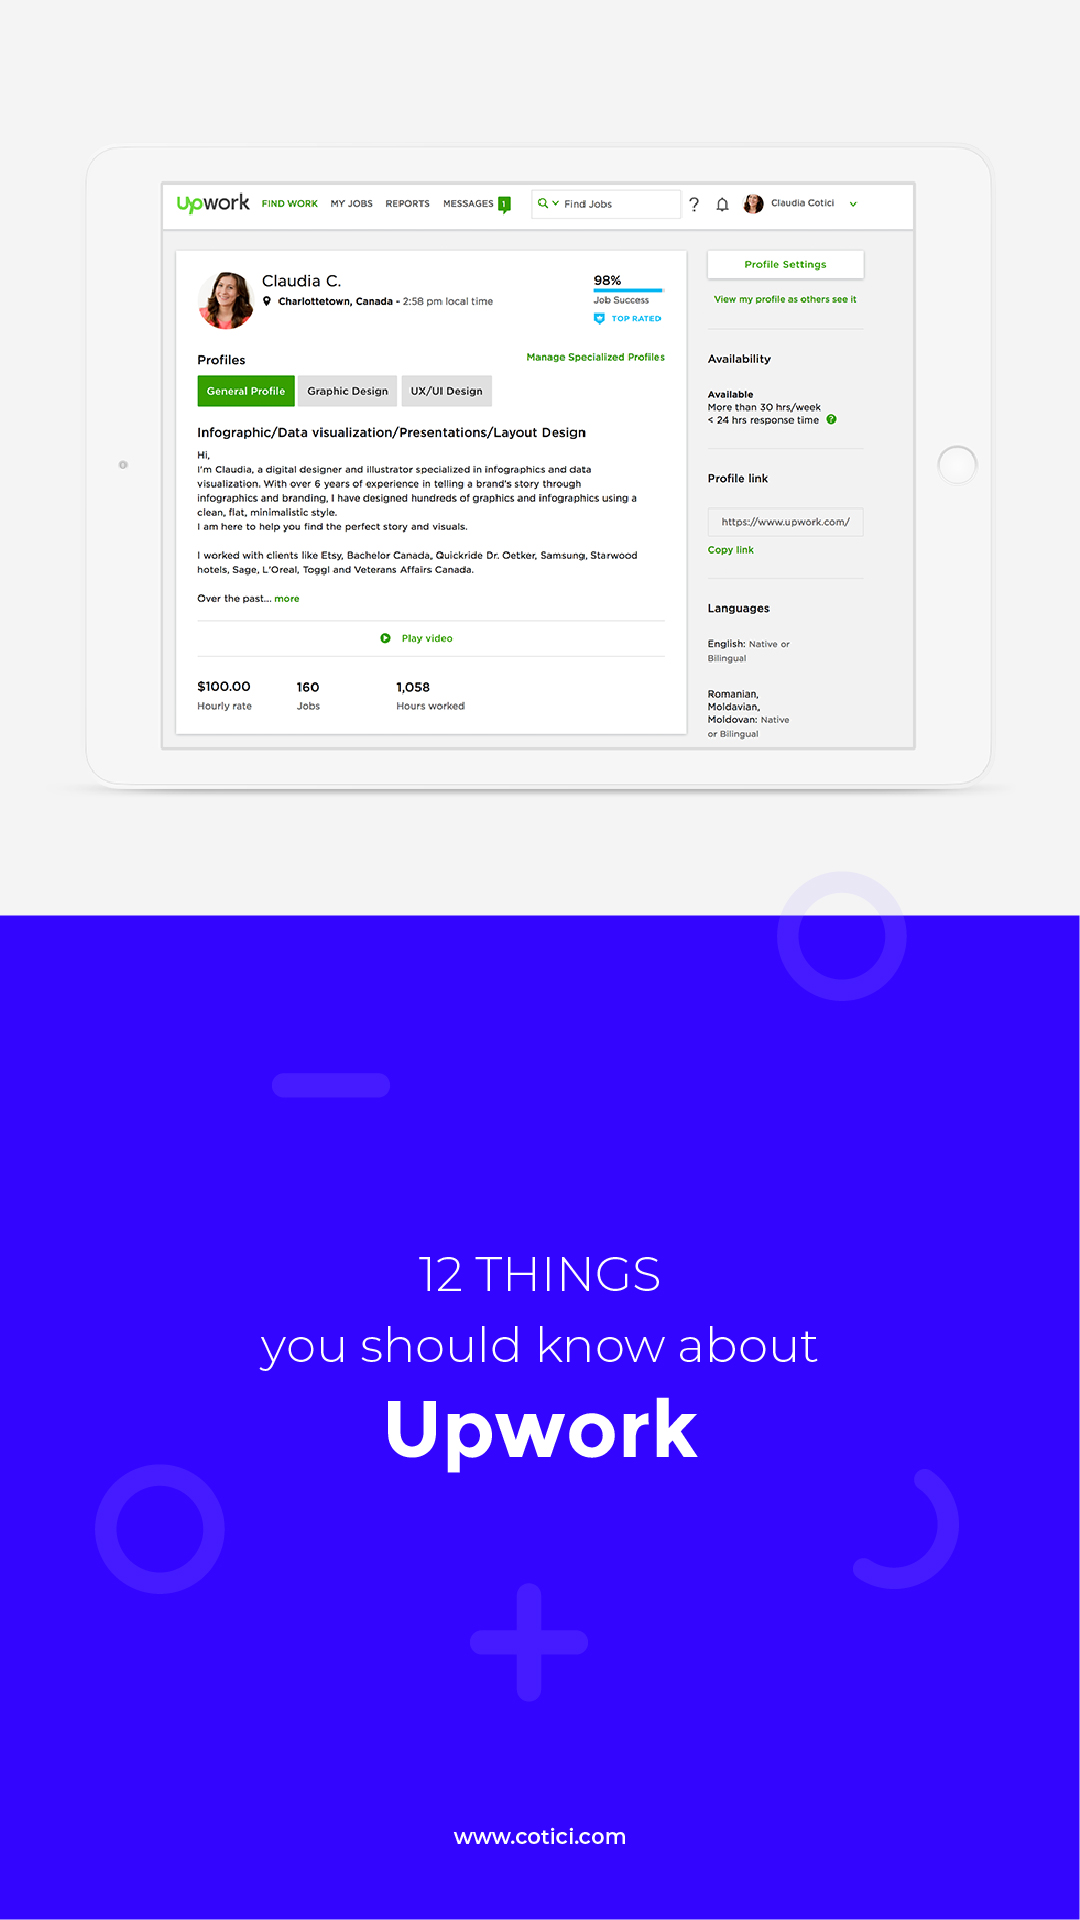 12 things you should know about Upwork.jpg